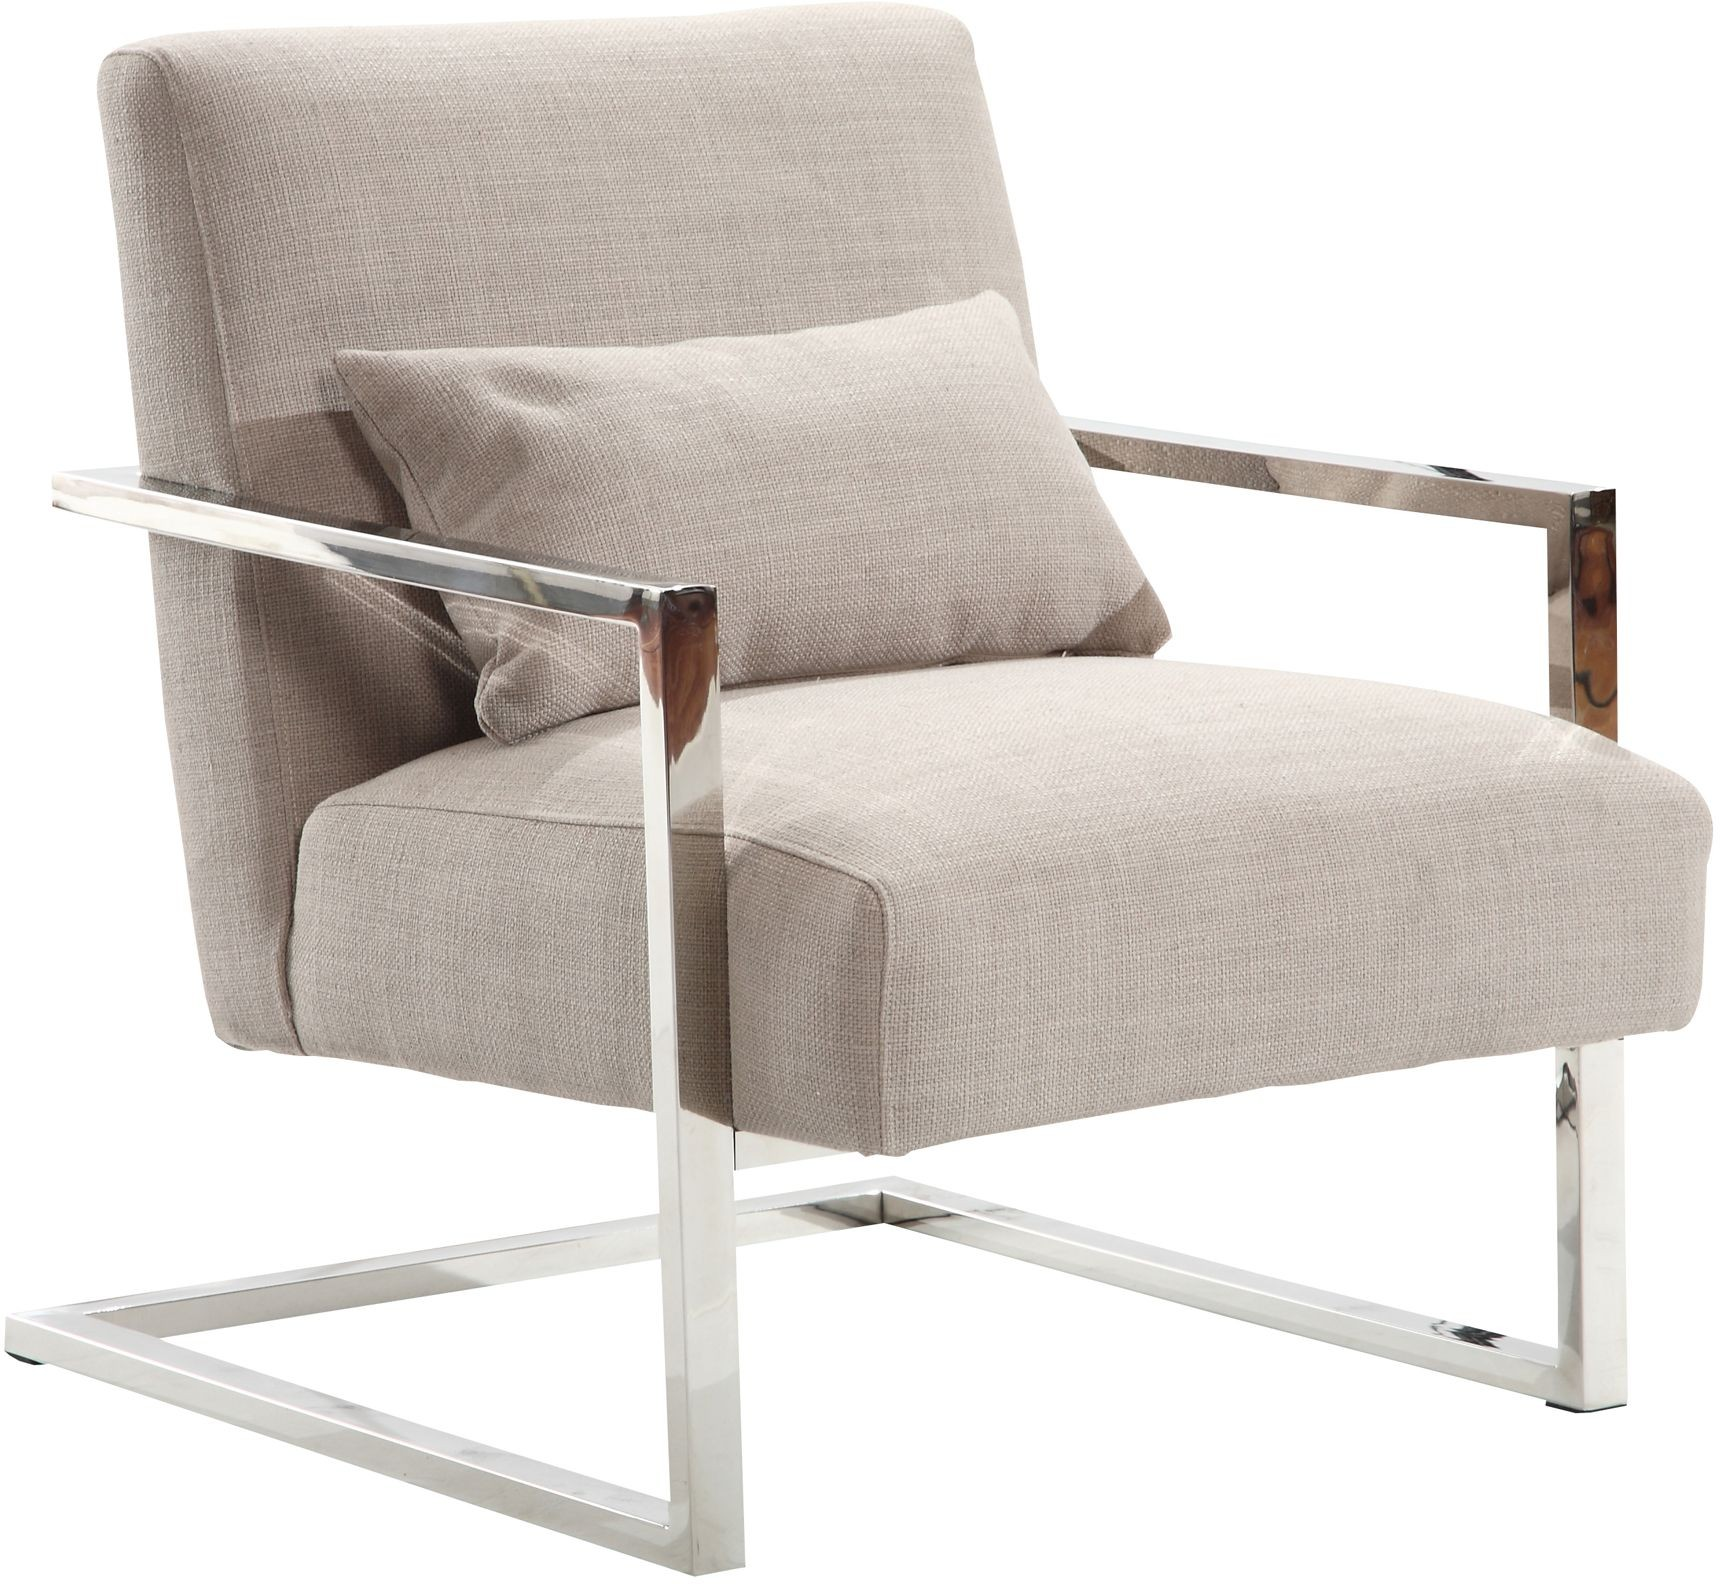 Designer Accent Chairs: Skyline Modern Gray Linen And Steel Accent Chair From